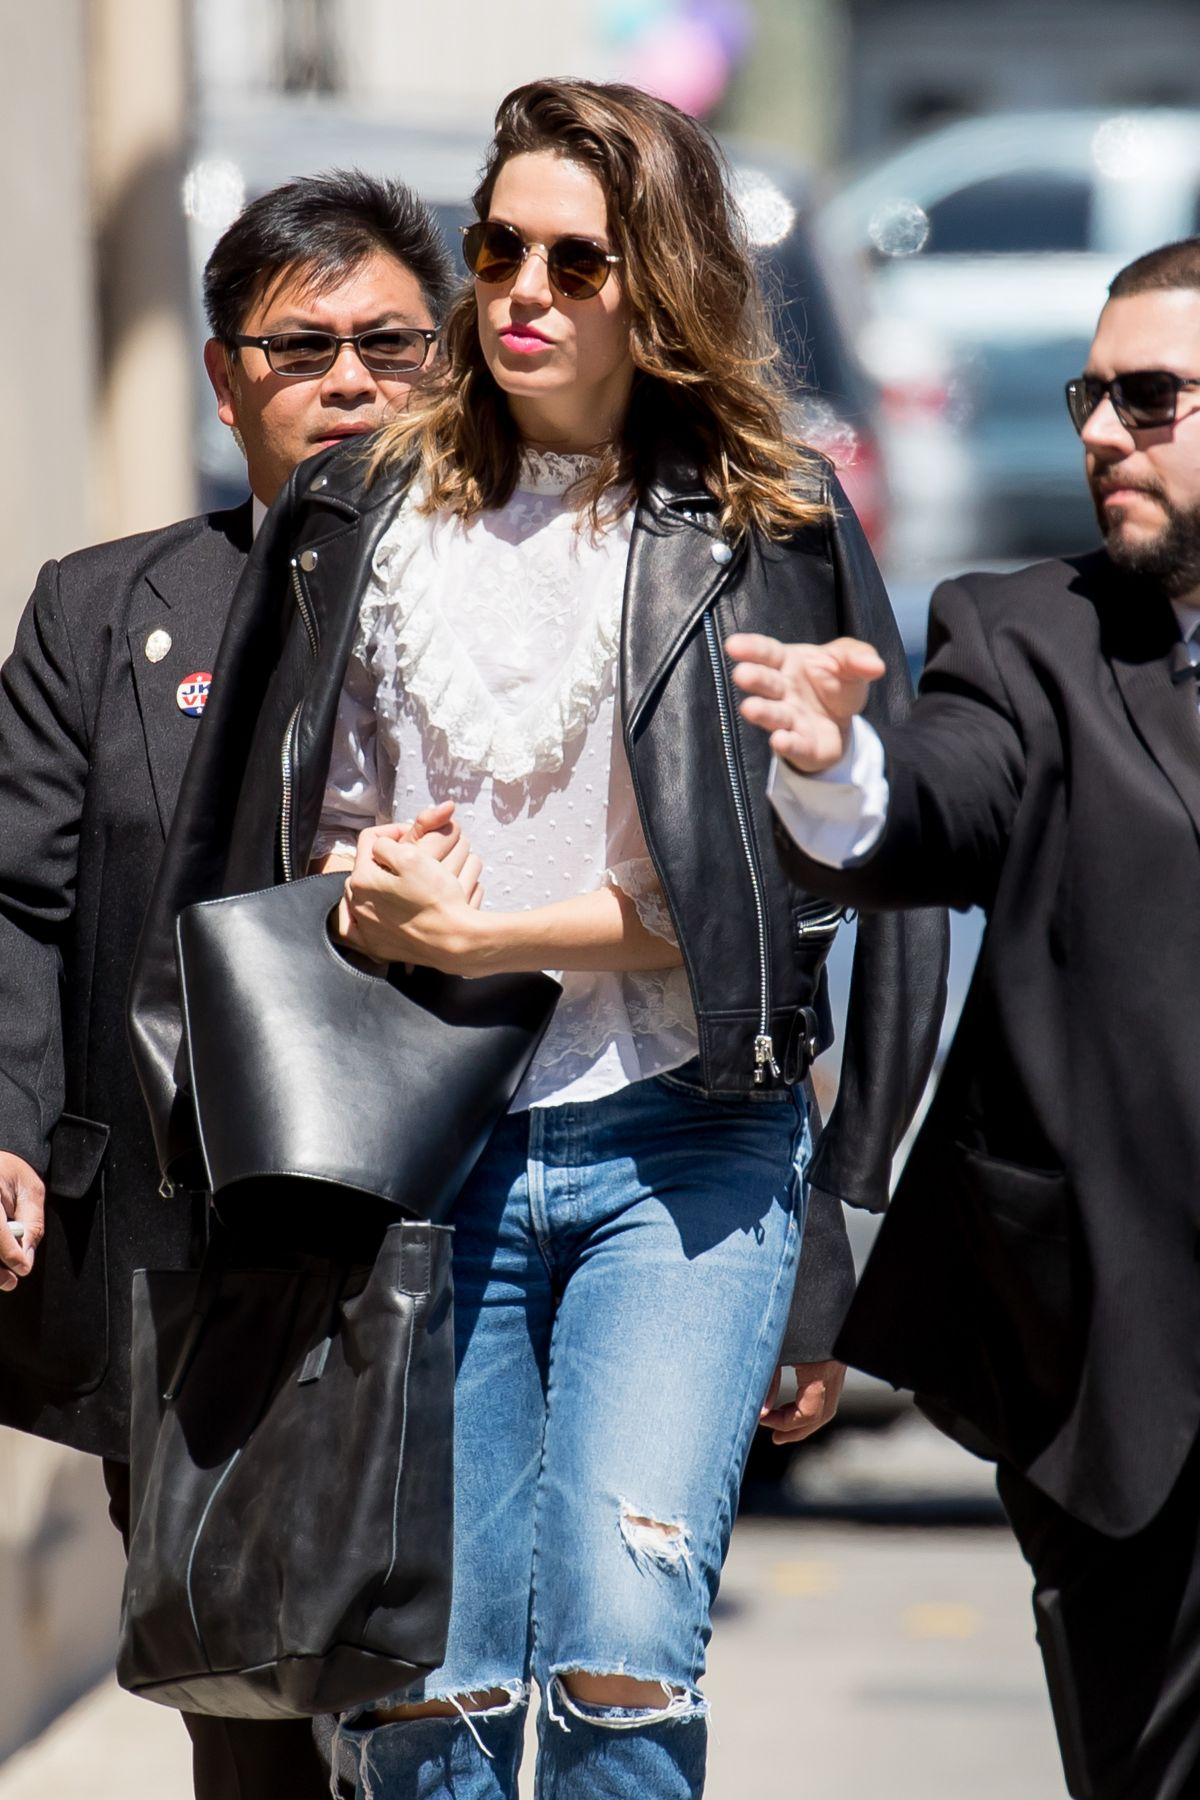 Mandy Moore At 'Jimmy Kimmel Live' in Hollywood   mandy-moore-at-jimmy-kimmel-live-in-hollywood-_8